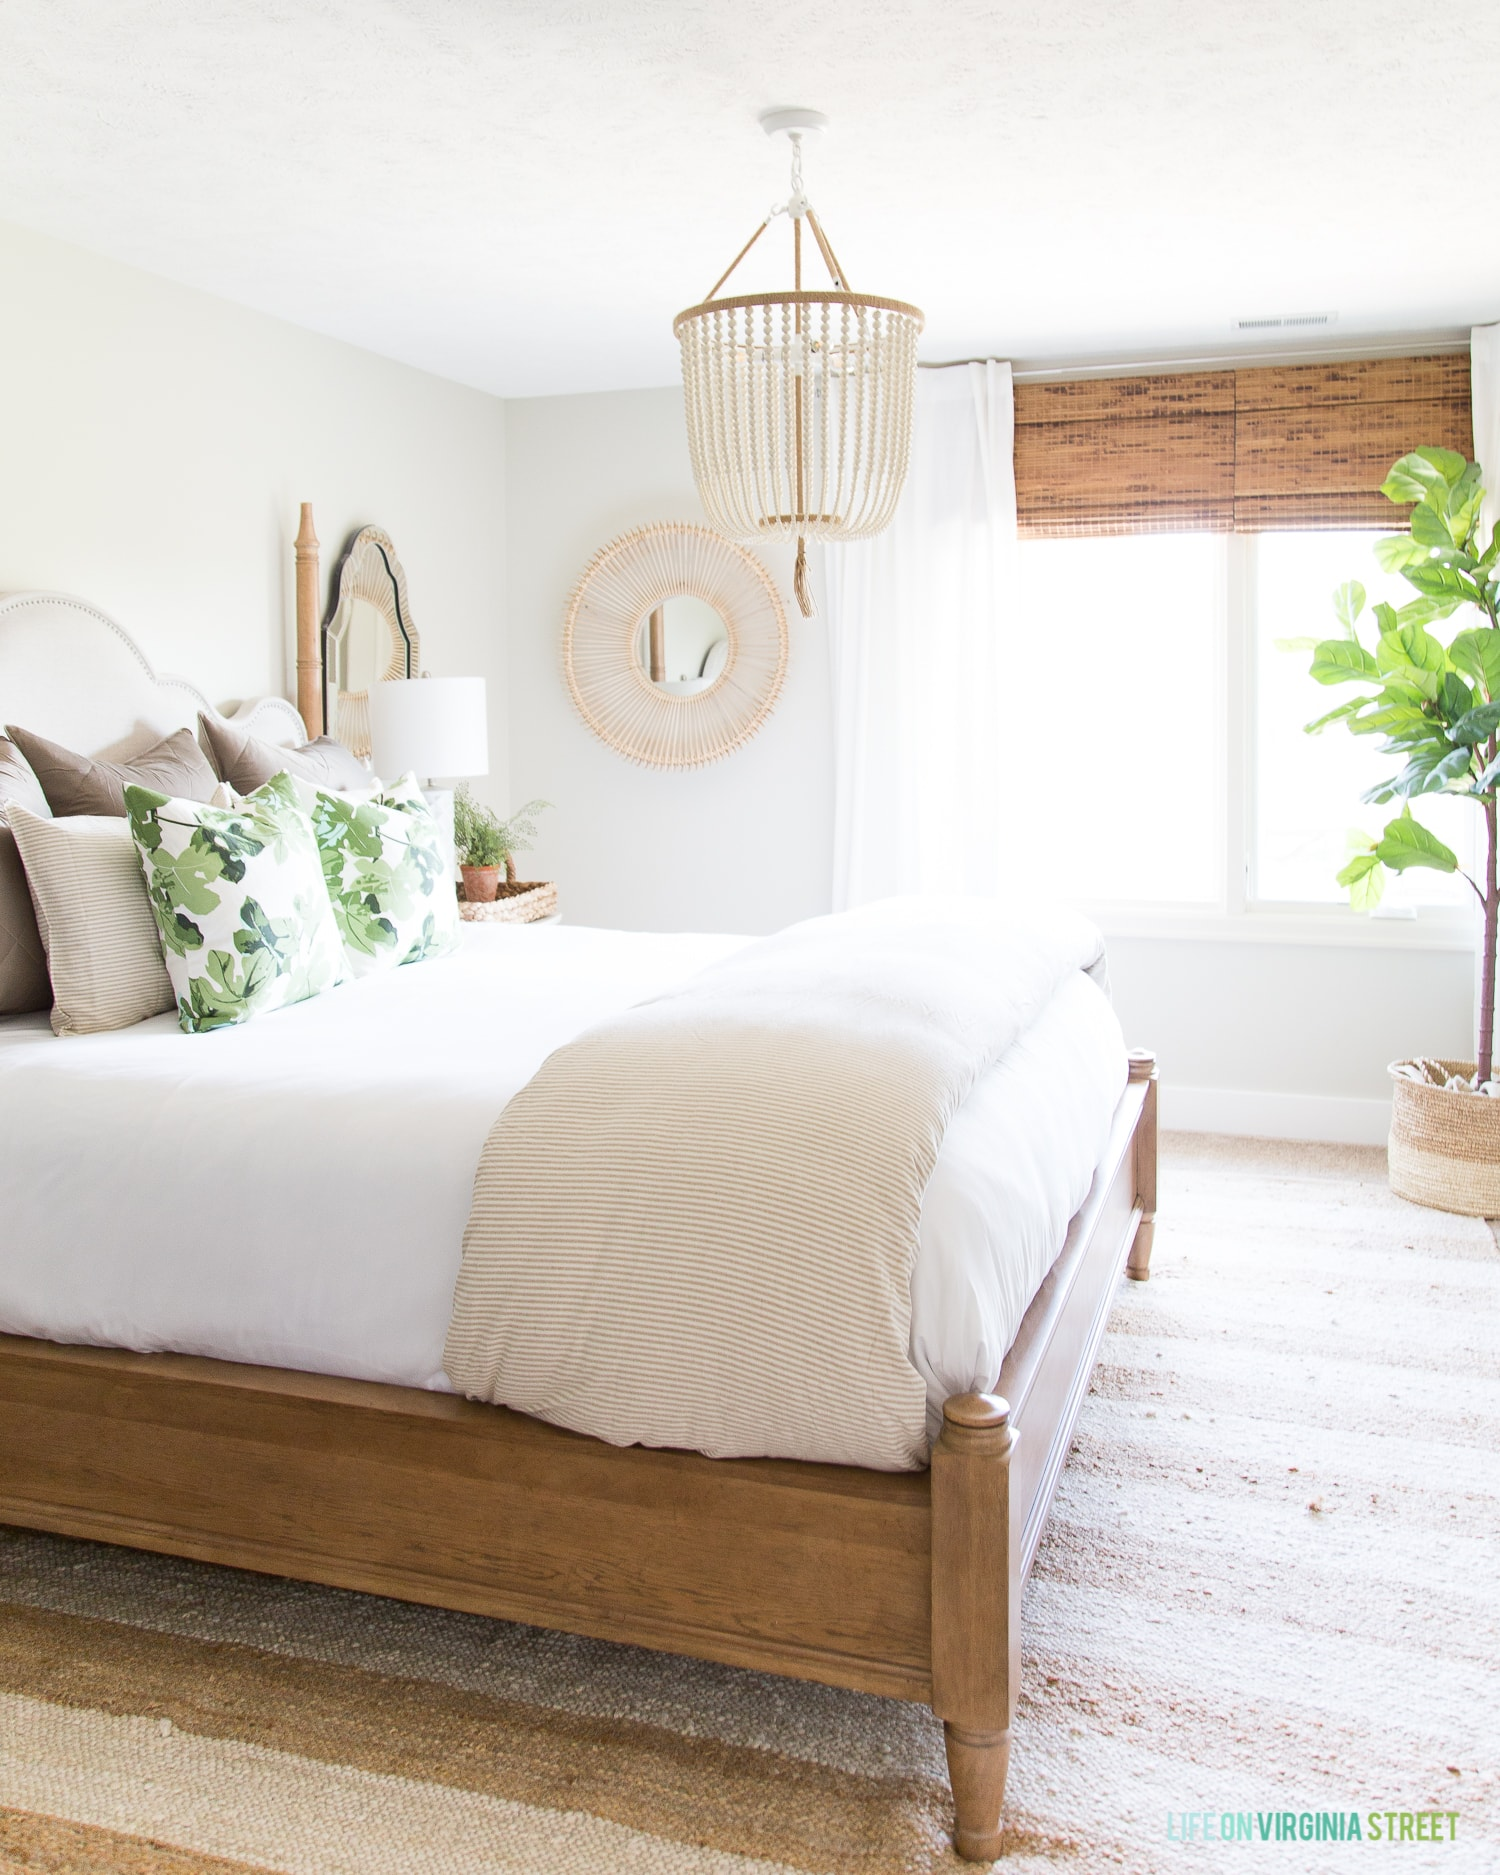 Bedroom Decorating Ideas 2018: Neutral And Green Fall Guest Bedroom